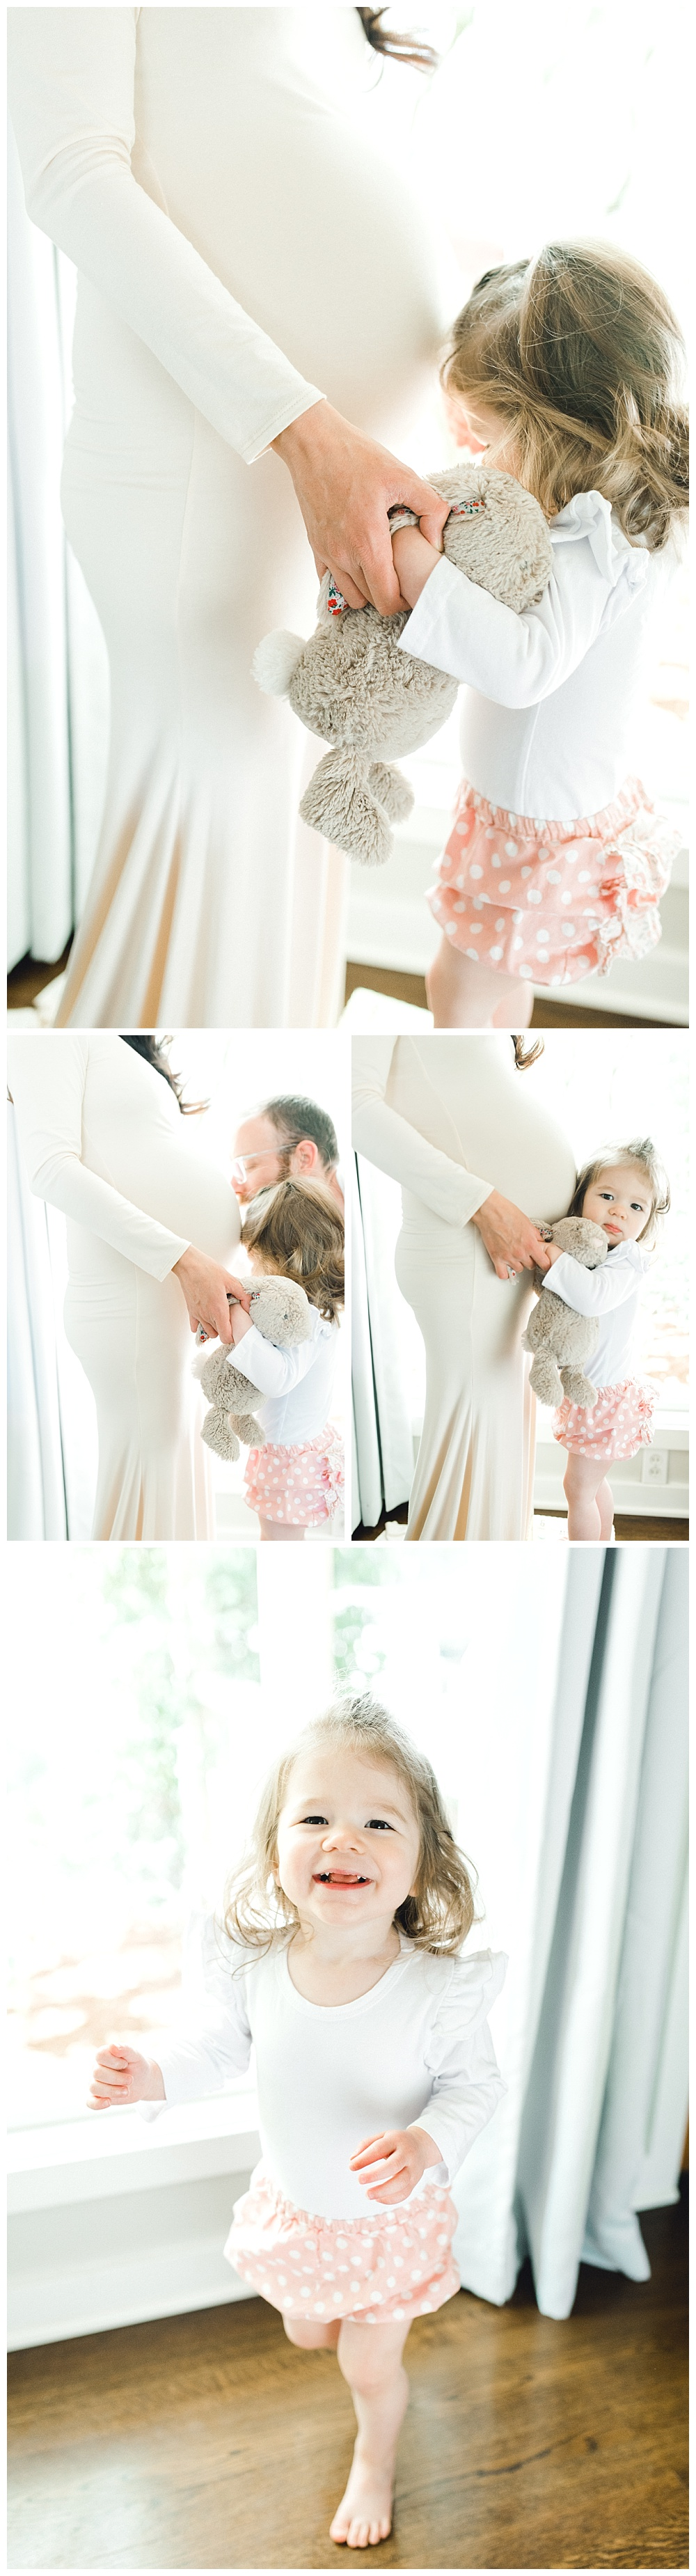 joyful family and maternity portraits. pregnant mommy playing with child